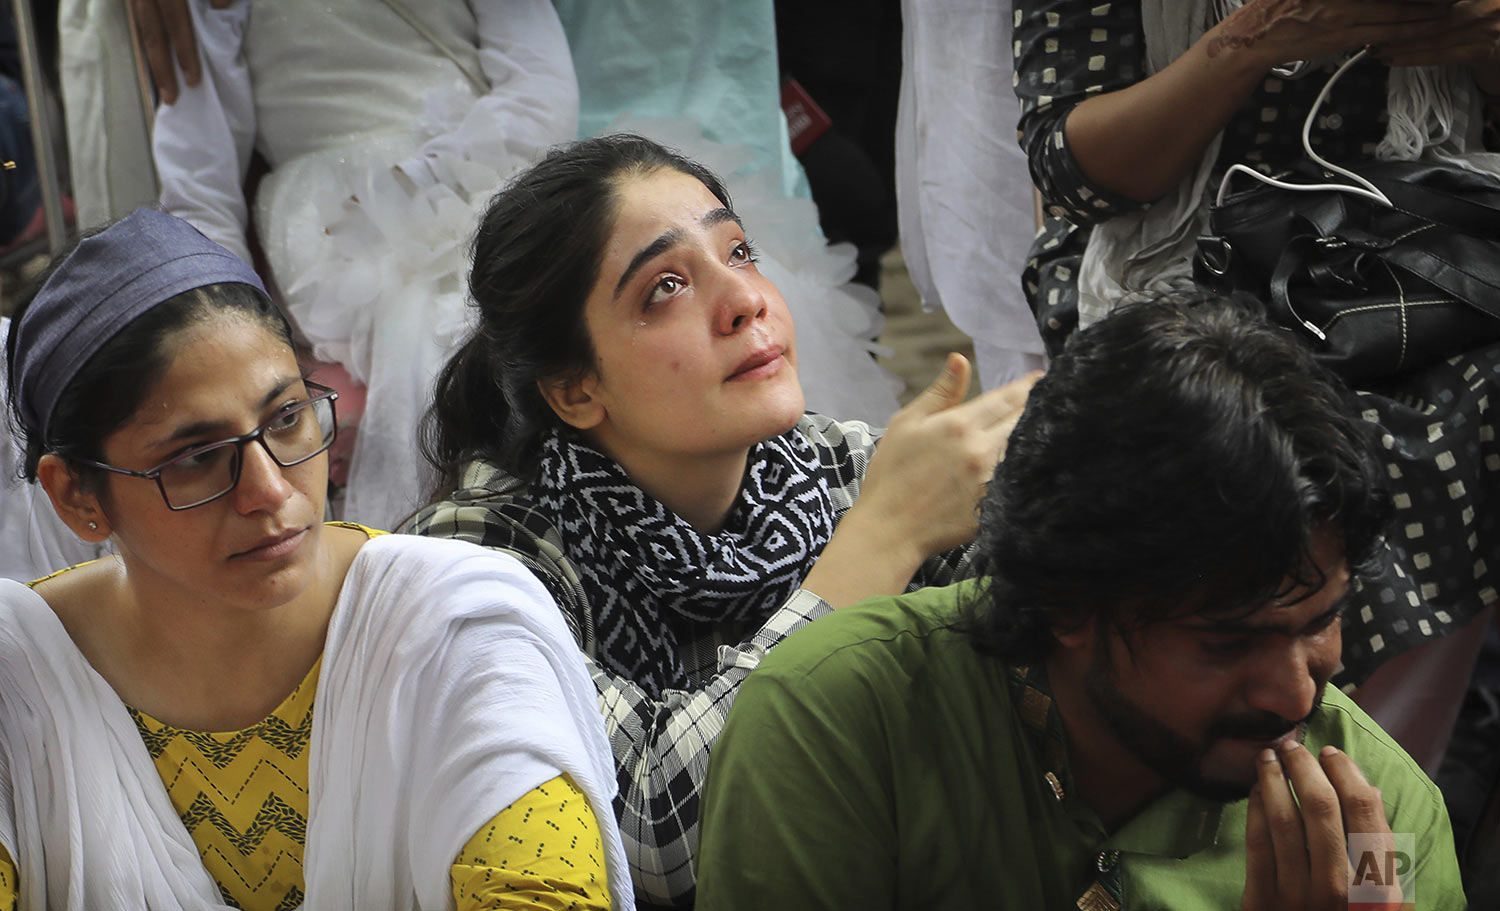 A Kashmiri woman breaks down after listening to a fellow Kashmiri narrating memories of past Eid in the valley as Kashmiris living in New Delhi gather for a function to observe Eid al-Adha away from their homes in New Delhi, India, Monday, Aug. 12, 2019. (AP Photo/Manish Swarup)